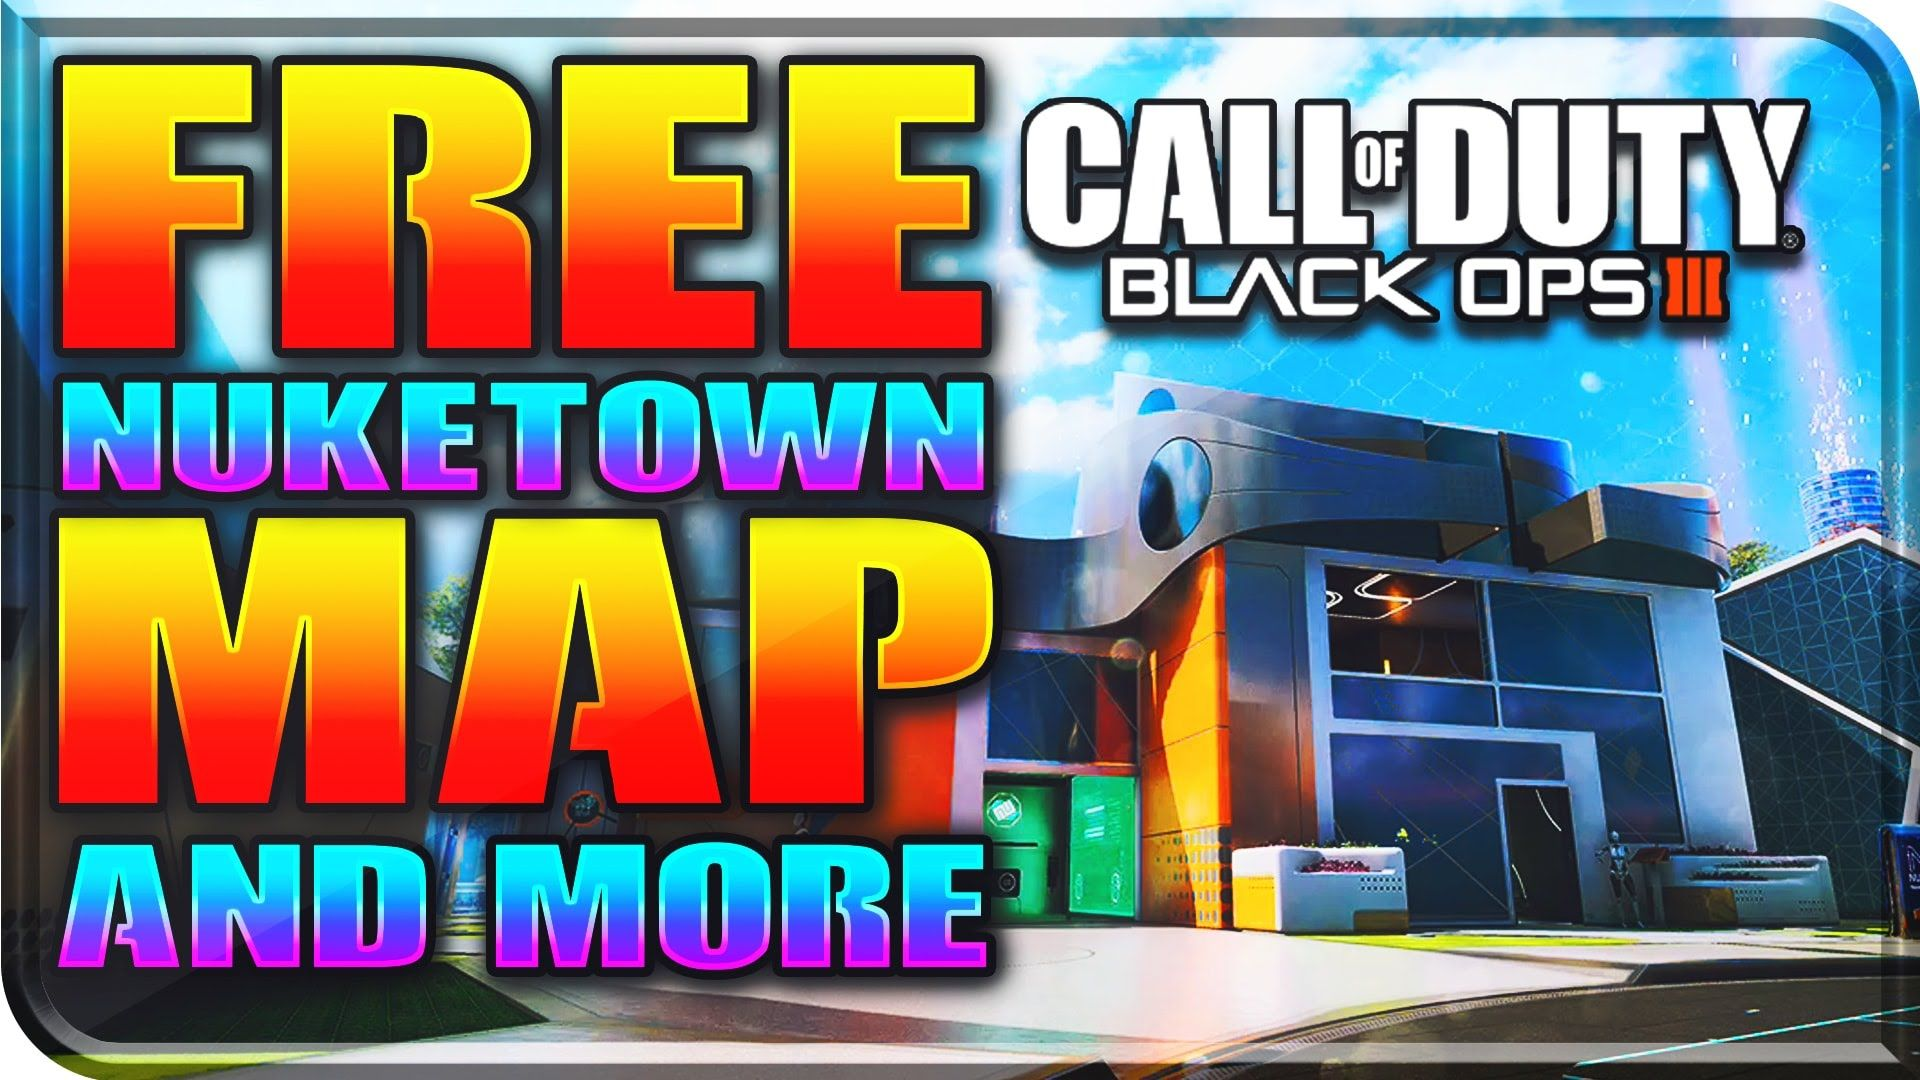 Black Ops 3 Free Nuketown Map Camo Calling Card More Bo3 Nuketown 2065 Free Dlc Add On Black Ops Black Ops 3 Call Of Duty Black